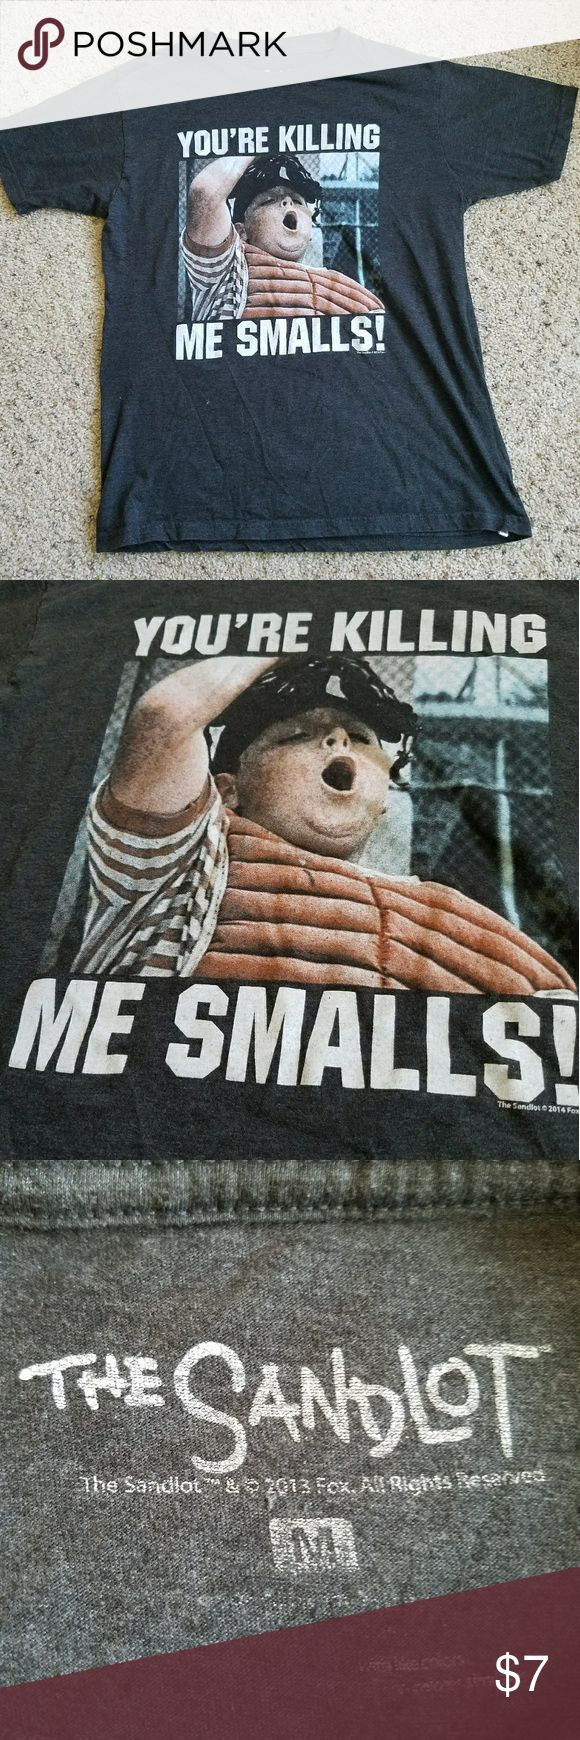 The Sandlot shirt gray size M A gray shirt with picture and quote from the movie Sandlot. This item has been gently used with no flaws The Sandlot Shirts Tees - Short Sleeve